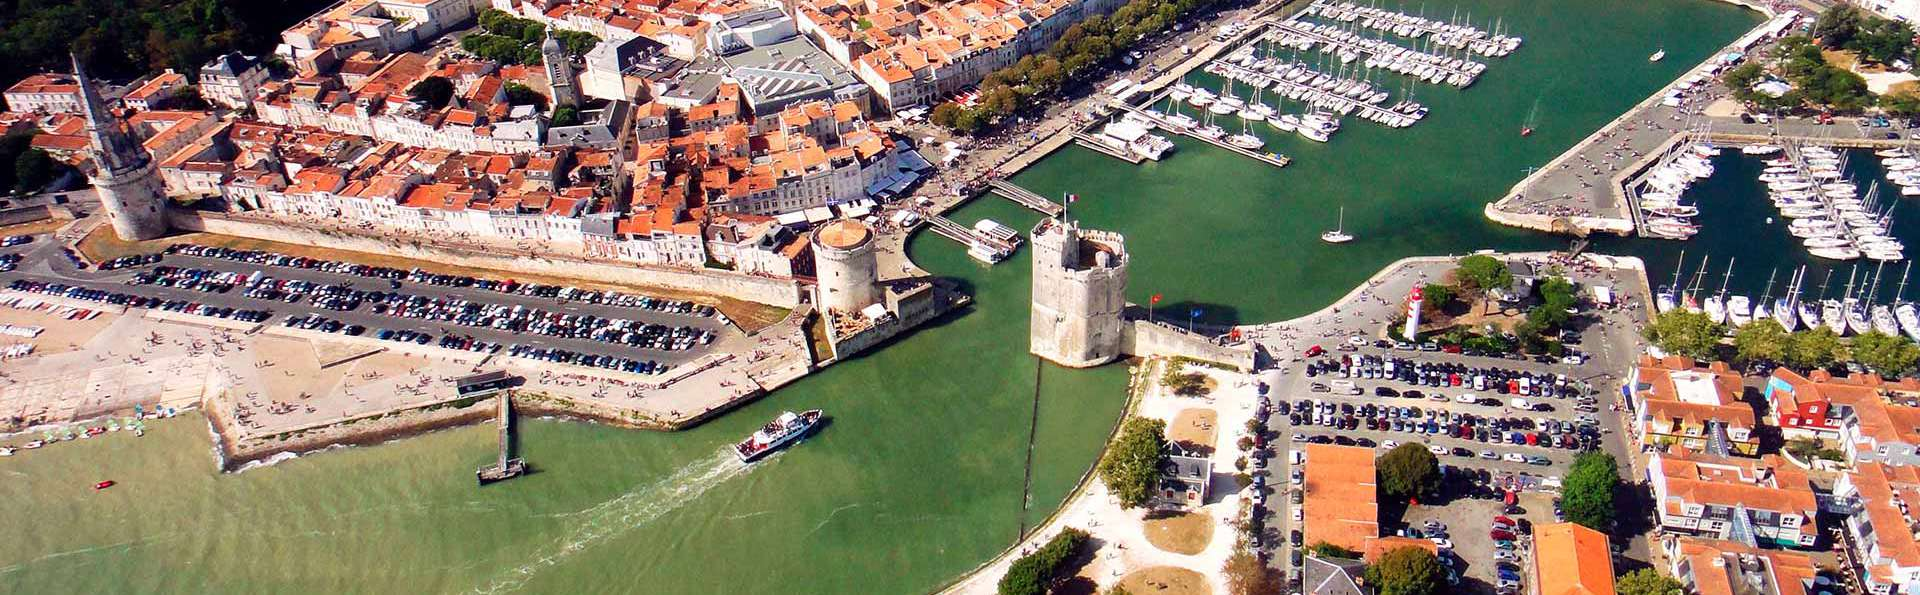 Week-end au coeur de La Rochelle